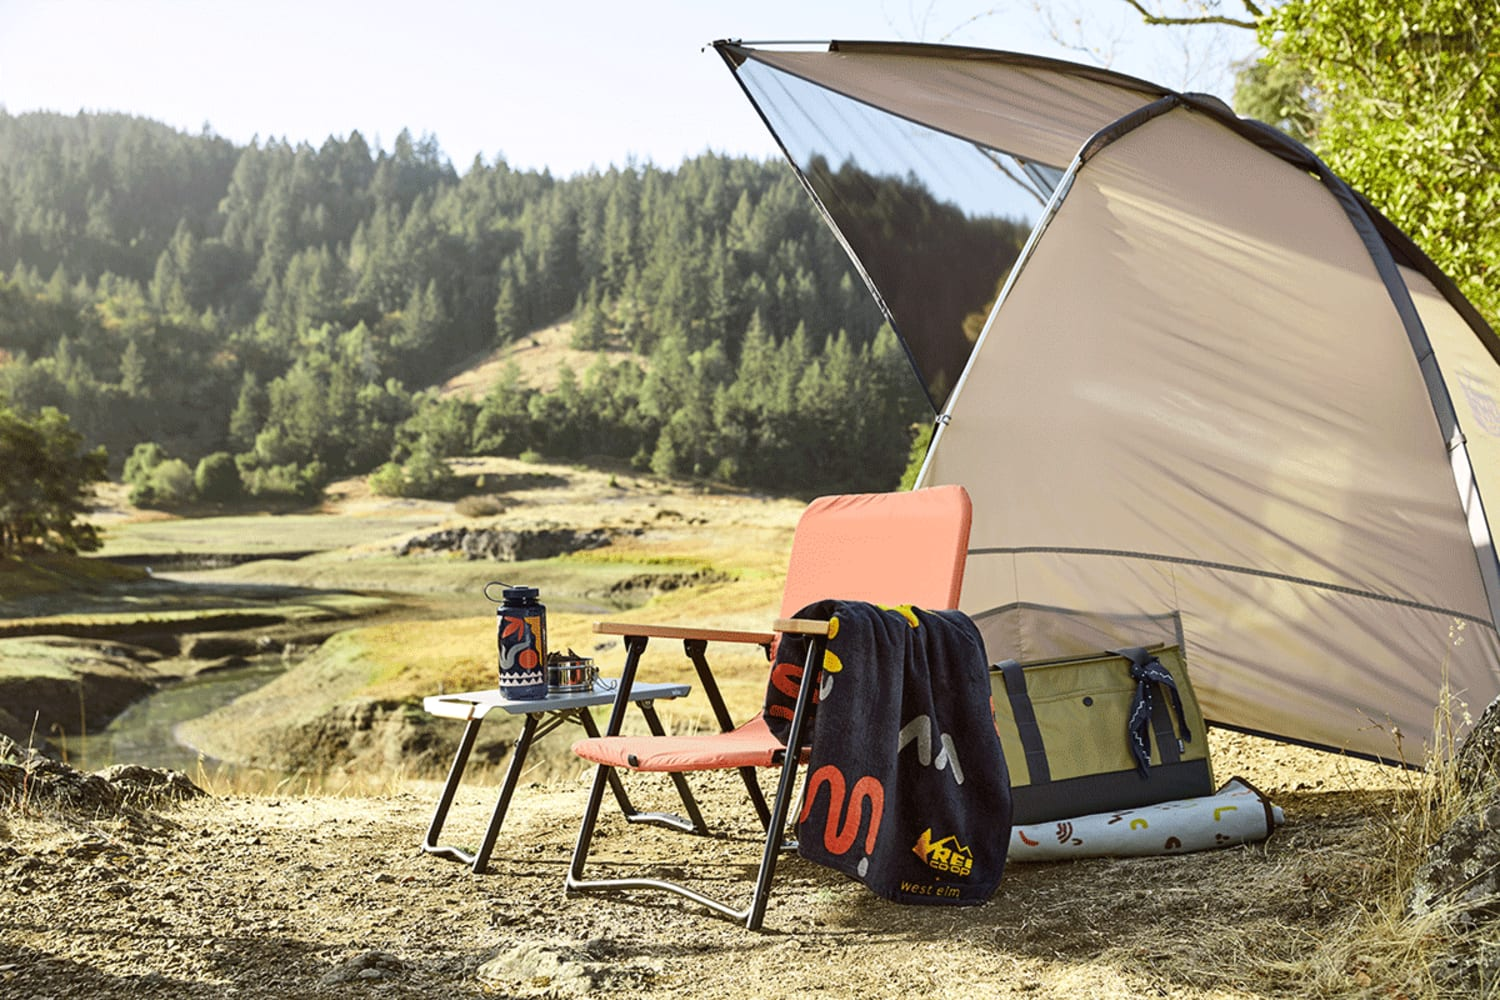 WEB rei outward low lawn chair sell V3 SU20 10744